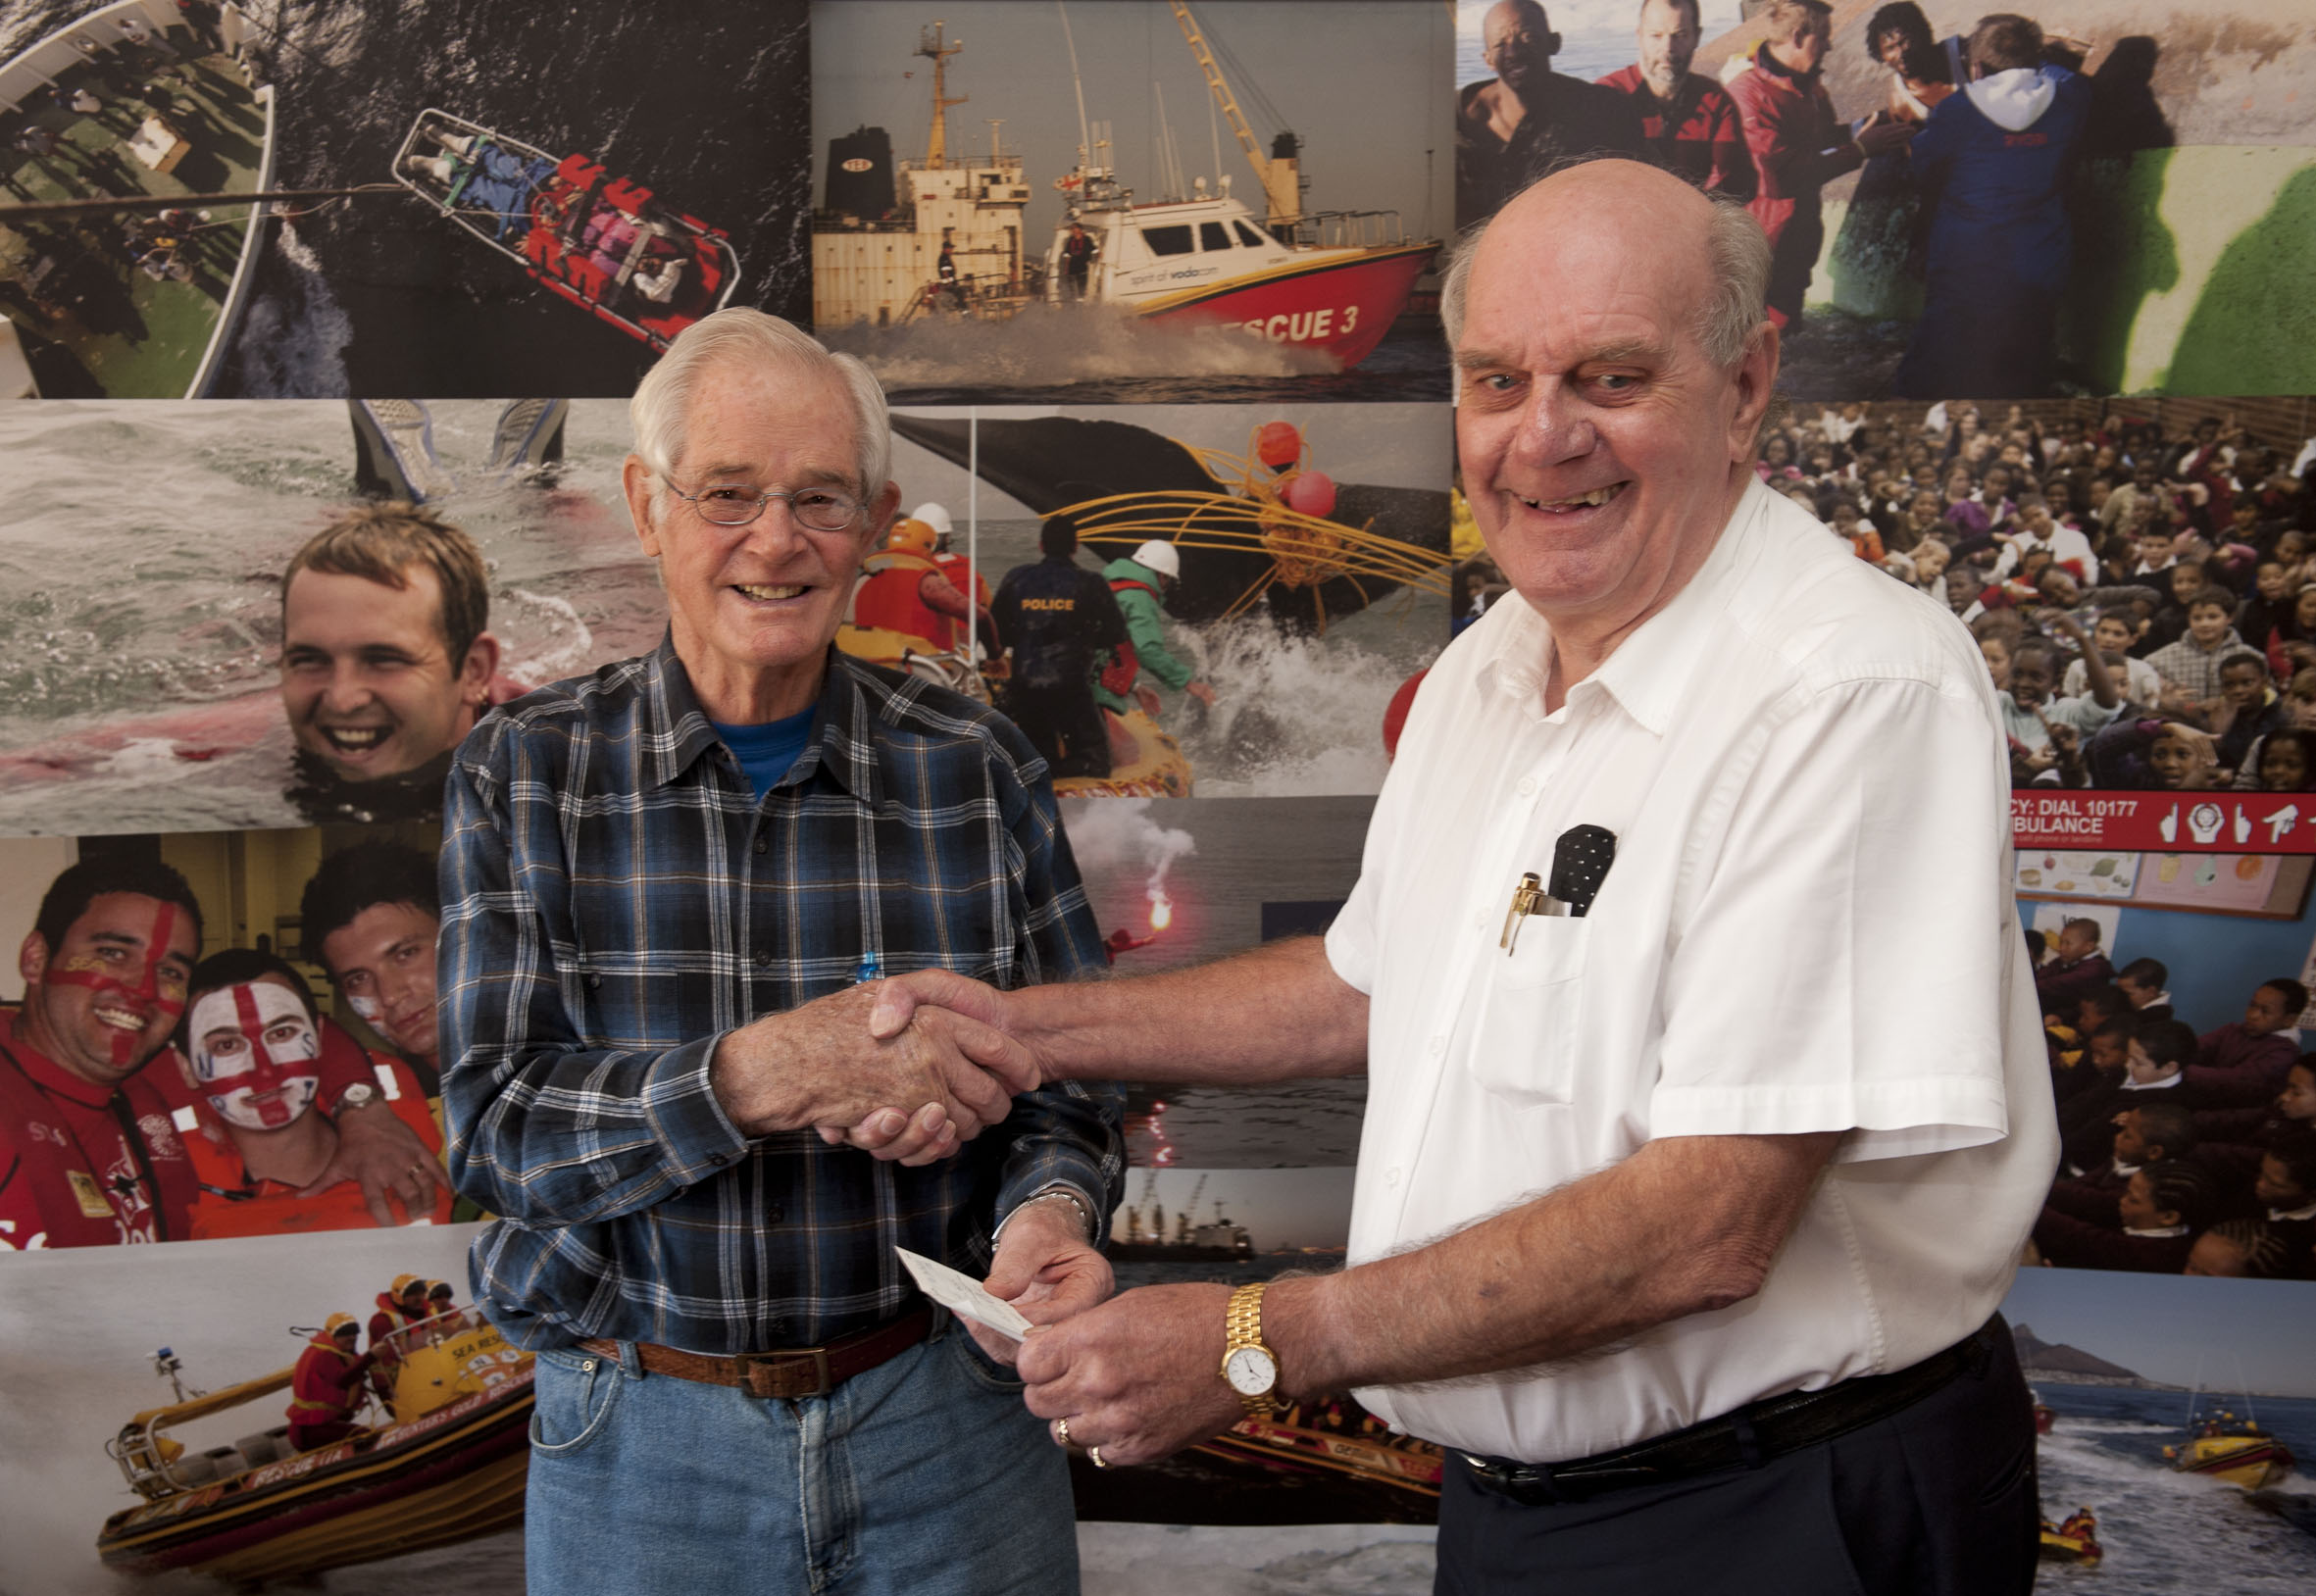 Chris Rainier-Pope hands the cheque to Bill Wells.